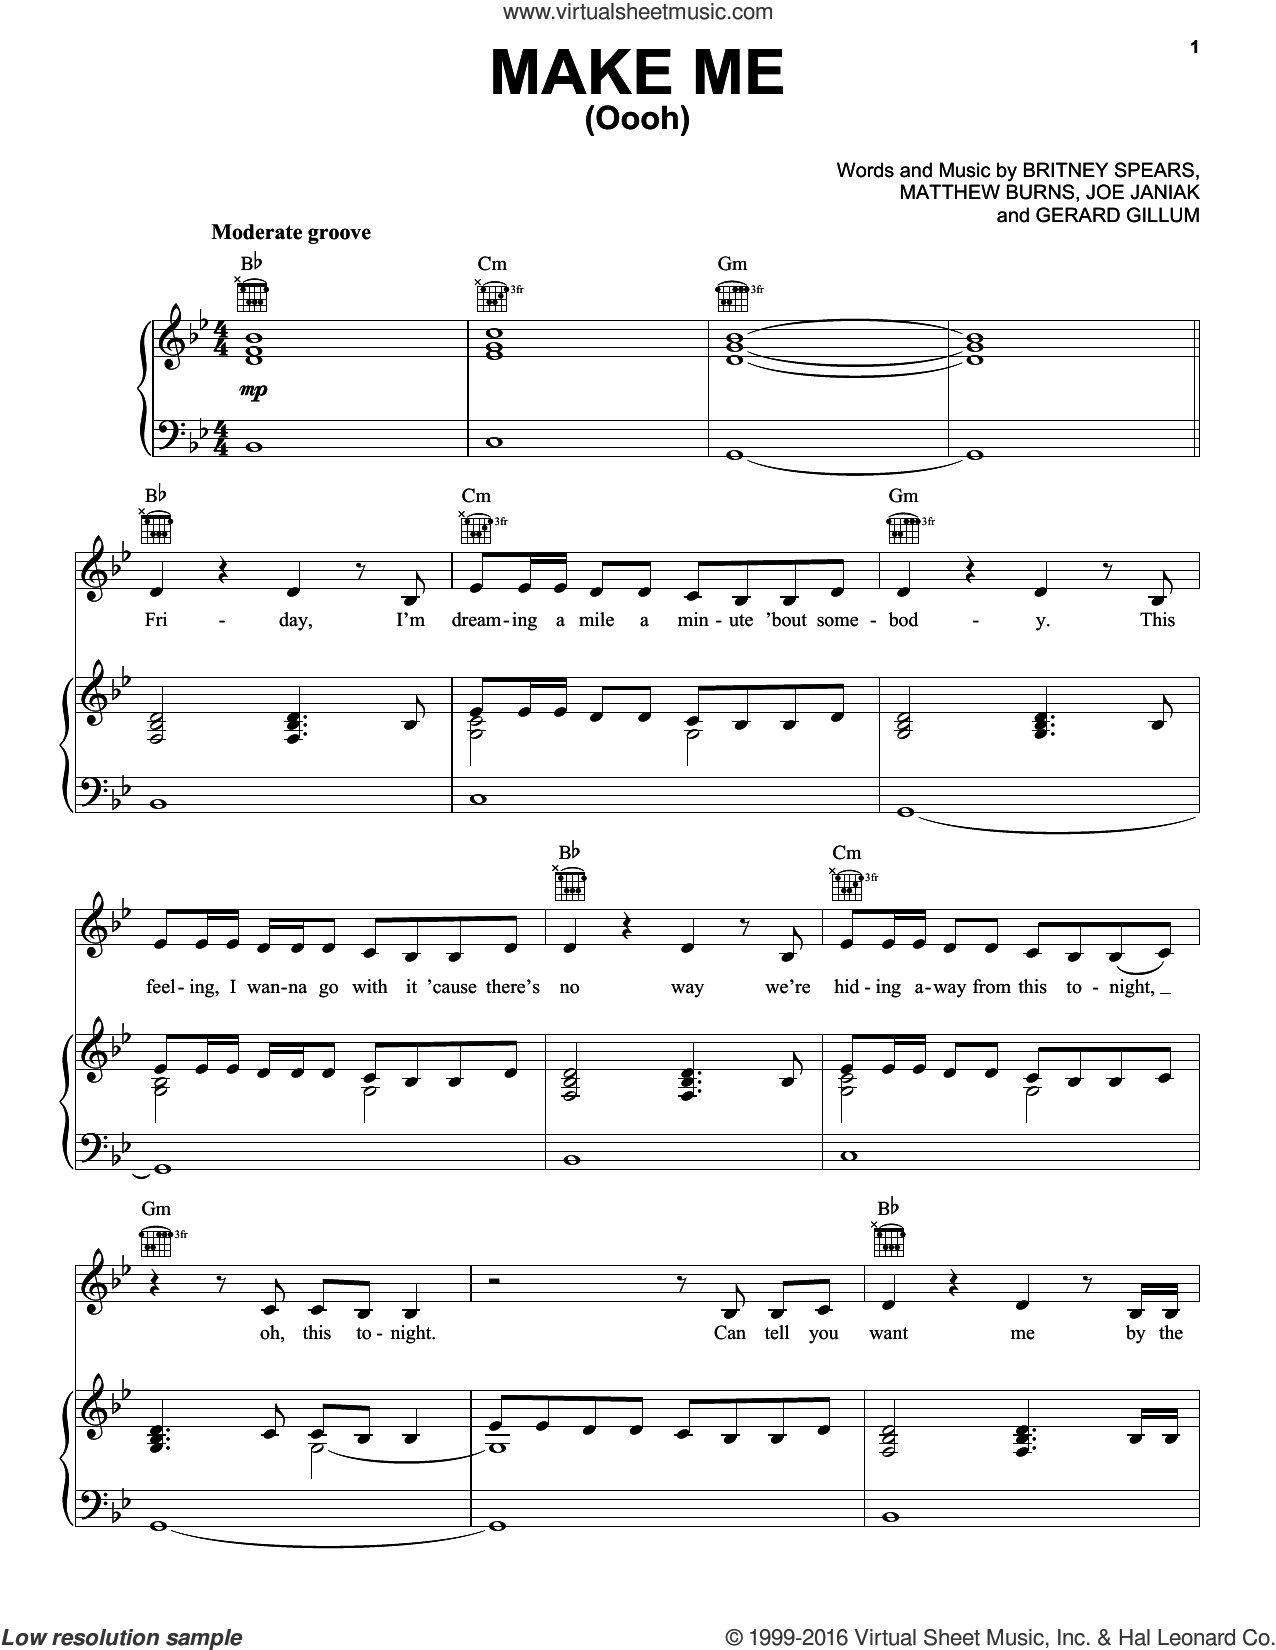 Make Me (Oooh) sheet music for voice, piano or guitar by Britney Spears feat. G-Eazy, G-Eazy, Britney Spears, Gerard Gillum, Joe Janiak and Matthew Burns, intermediate skill level